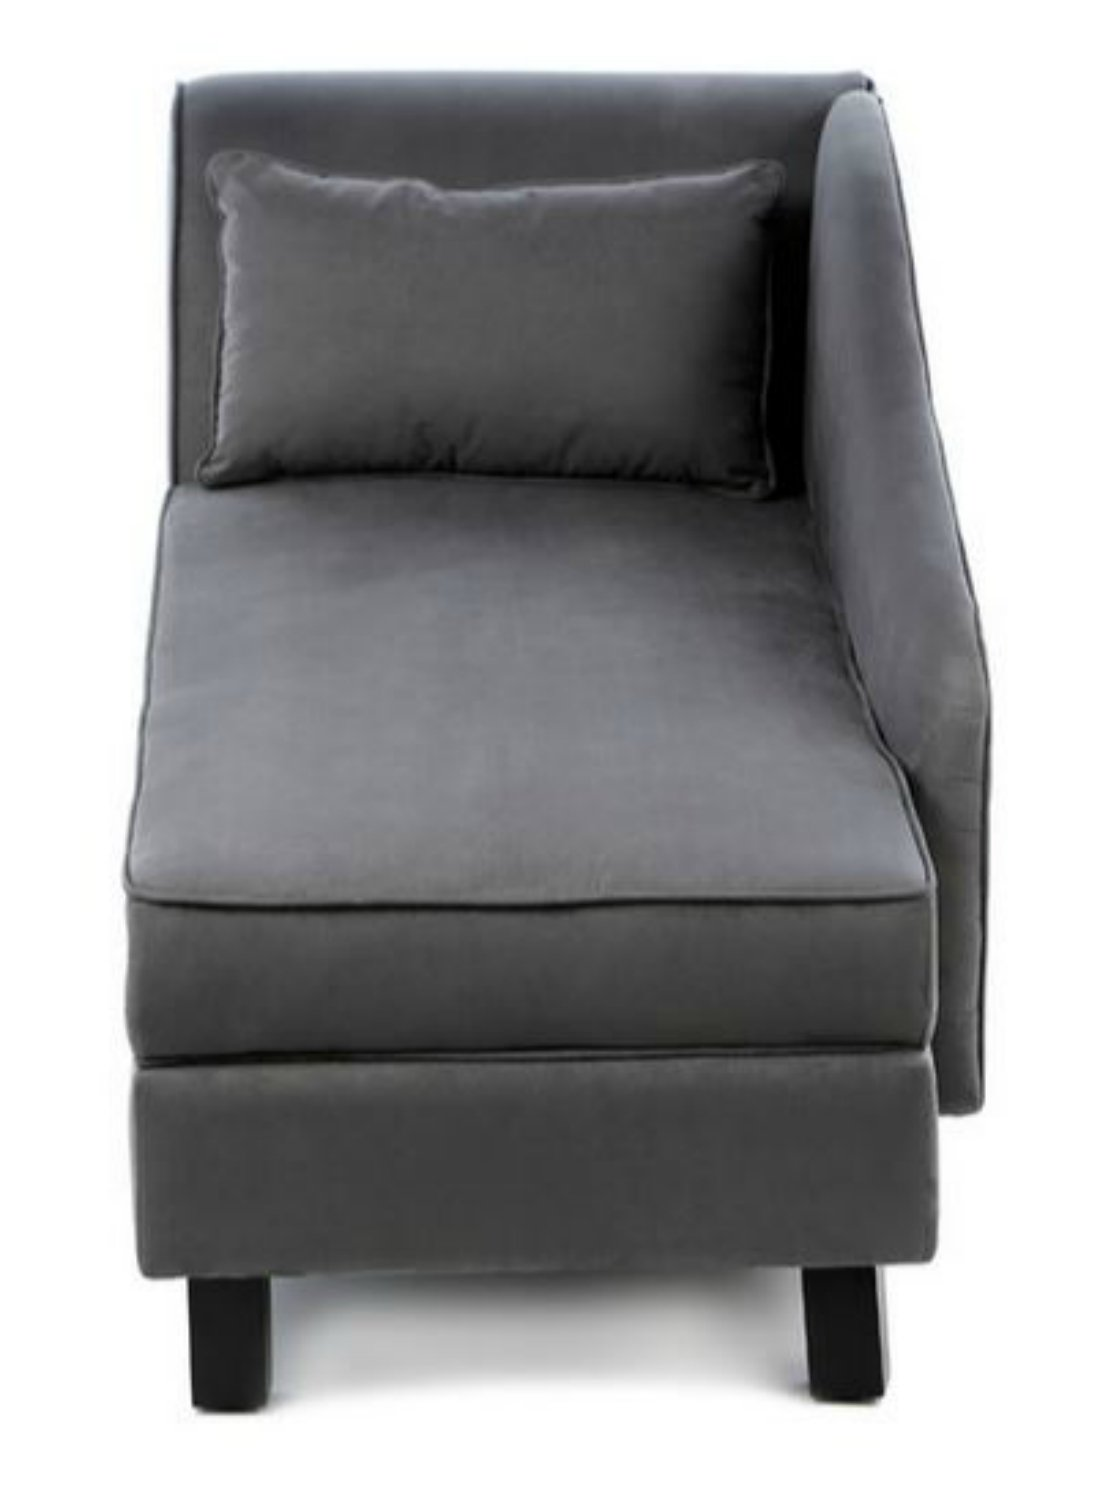 office chaise lounge chair. brilliant chair amazoncom storage chaise lounge chair this microfiber upholstered  lounger is perfect for your home or office  put this accent sofa furniture in the  to